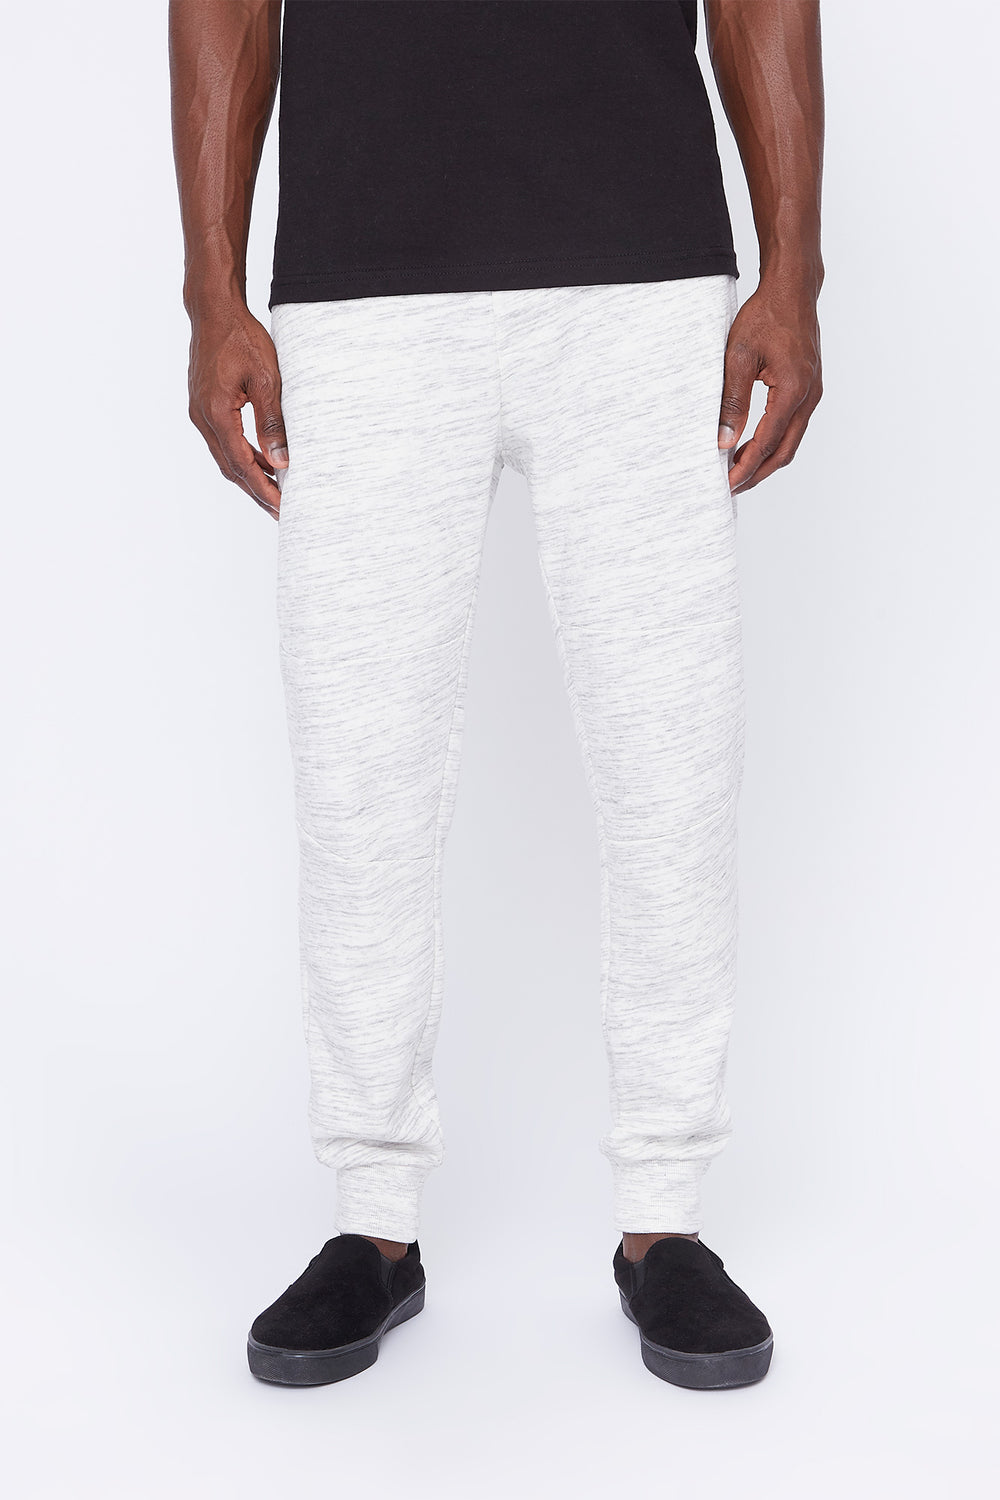 West49 Mens Spacedye Jogger Oatmeal